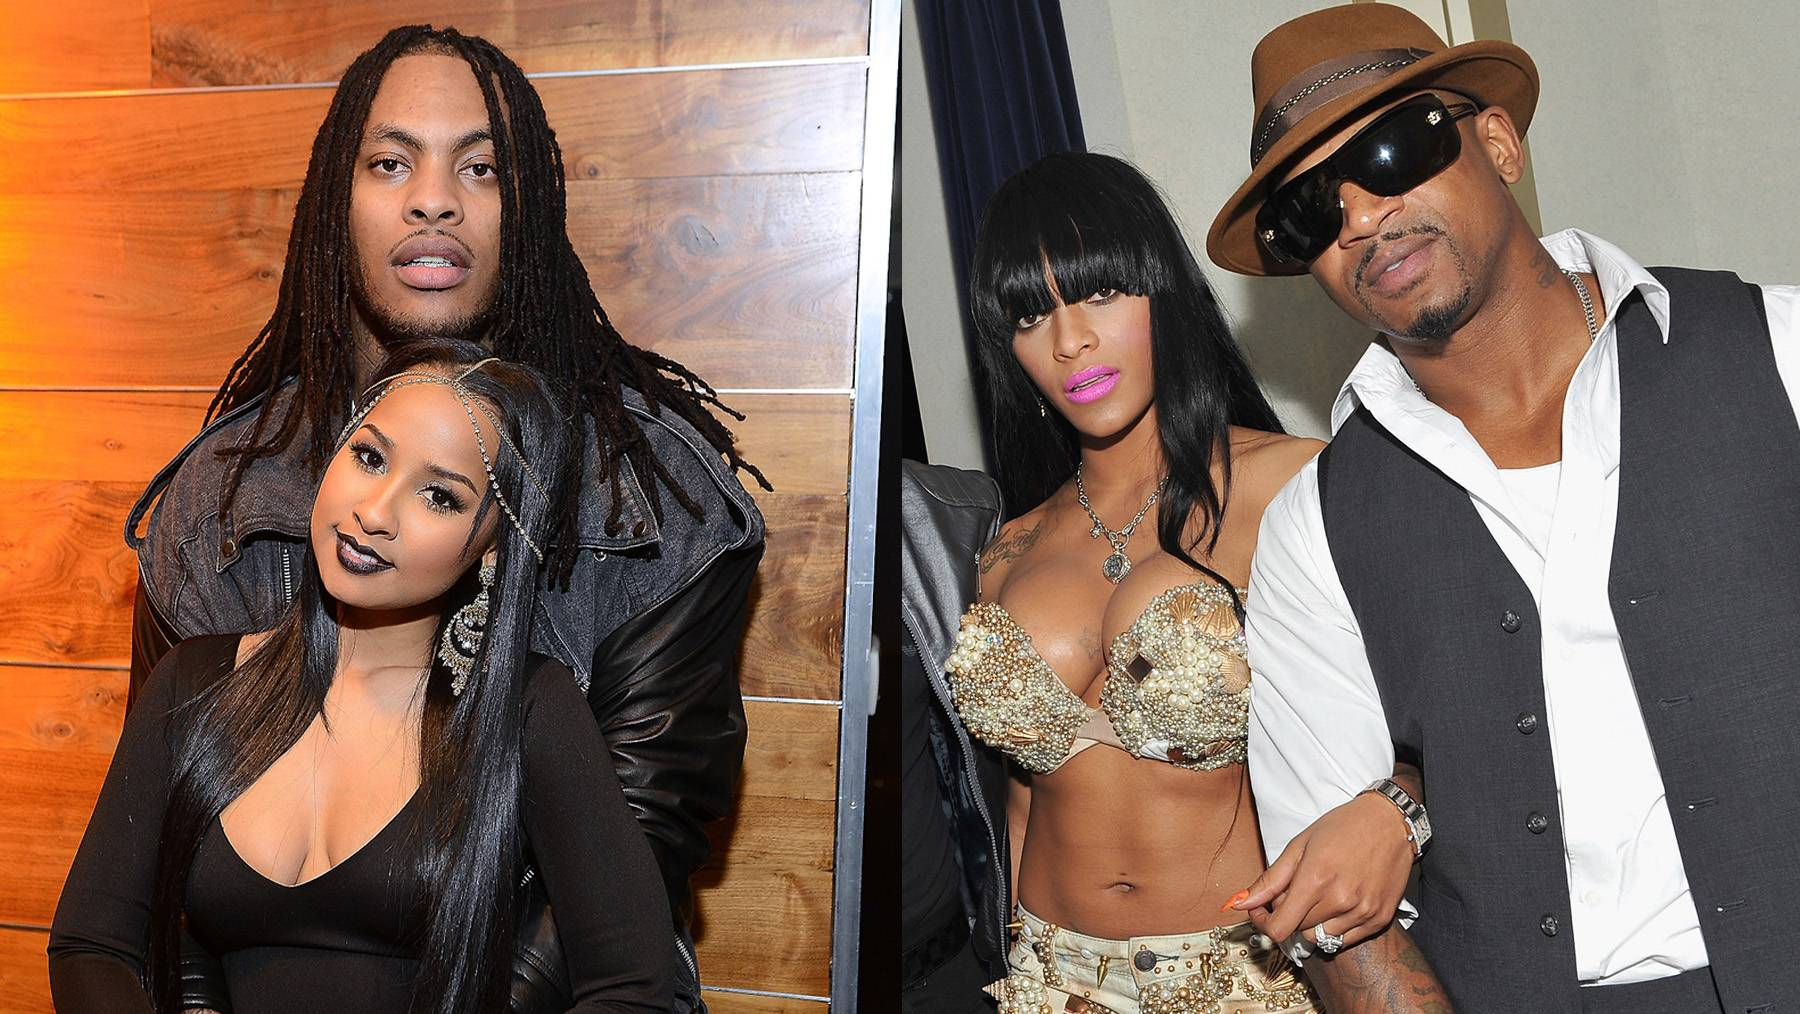 """Waka and Tammy Stir the Pot - Waka Flocka and Tammy Rivera are instigating more drama with Stevie J and Joseline Hernandez via social media. Tammy posted a photo on her Instagram featuring Waka Flocka pointing a gun at the camera. The caption read: """"Daddy's home #meettheflockas love and hip-hop.""""If you recall, Waka Flocka was not at the taping of the Love and Hip-Hop Atlanta reunion where Tammy was attacked by Joseline Hernandez. Tammy's mother-in-law Deb said that Waka's absence was a good thing because he'd obviously have a problem with what went down. Based on that Instagram post, which Tammy has since deleted (but not before the Internets got a screengrab), it's obvious this beef will still be brewing if they return for another season. It's sad to say this but we hope everyone returns with the proper under armor...catch our drift? (Photos from left: Paras Griff..."""